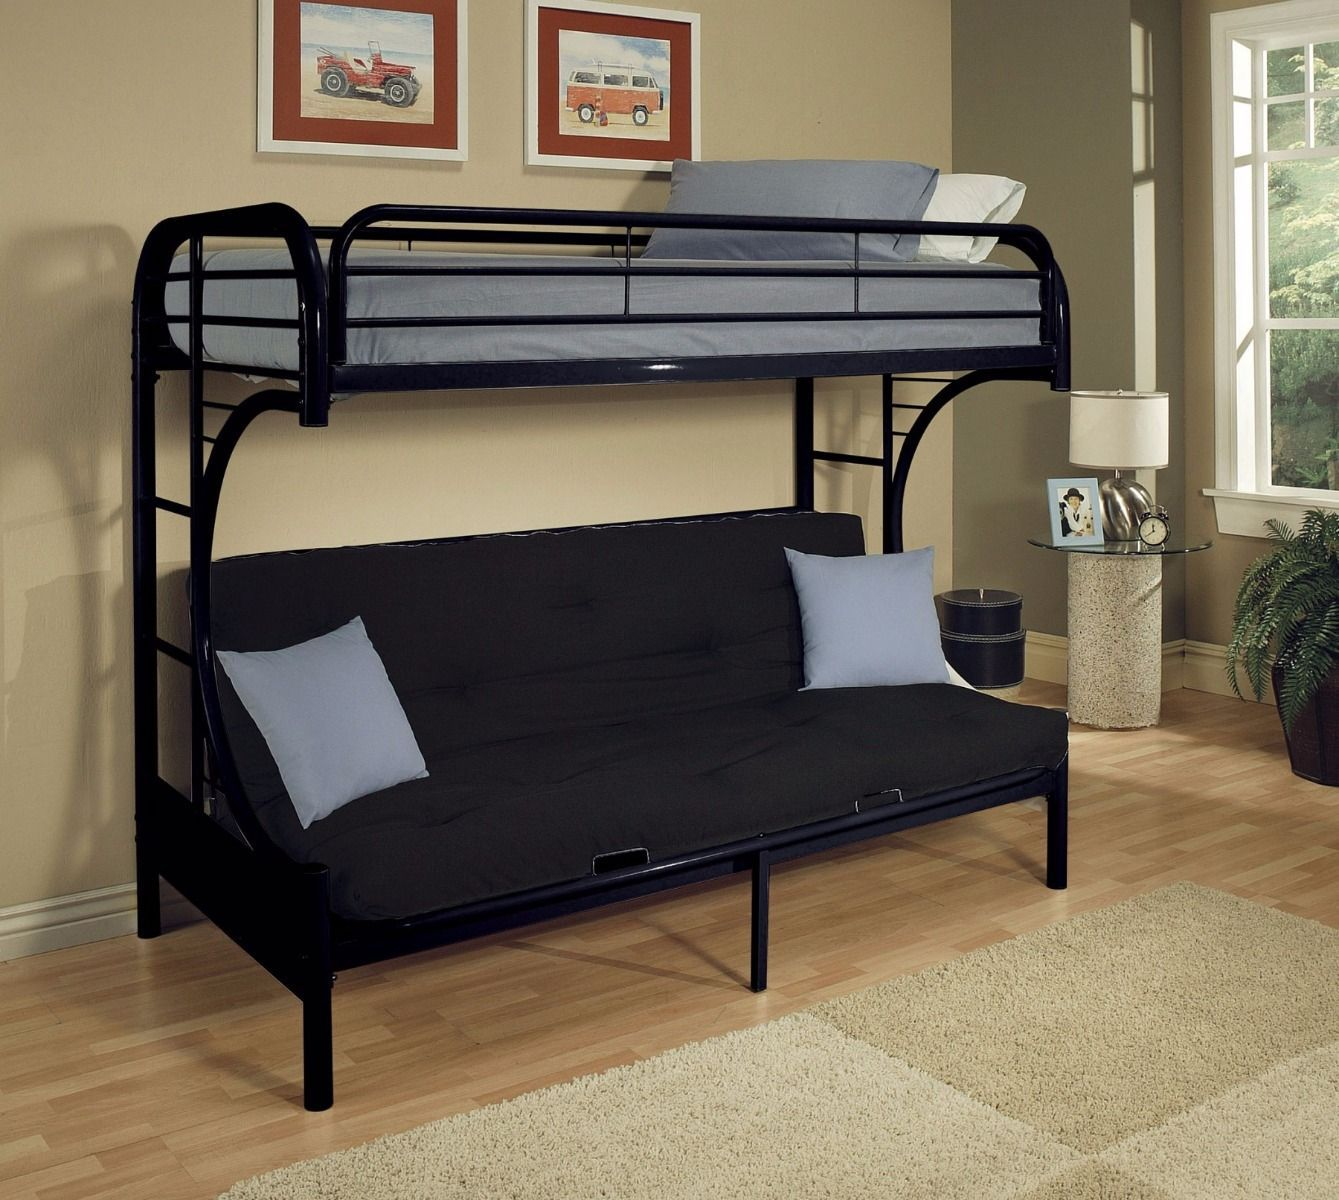 Cabot Extra Long Twin Over Queen Futon Bunk Bed Black Metal Bunk Beds Futon Bunk Bed Futon Bed